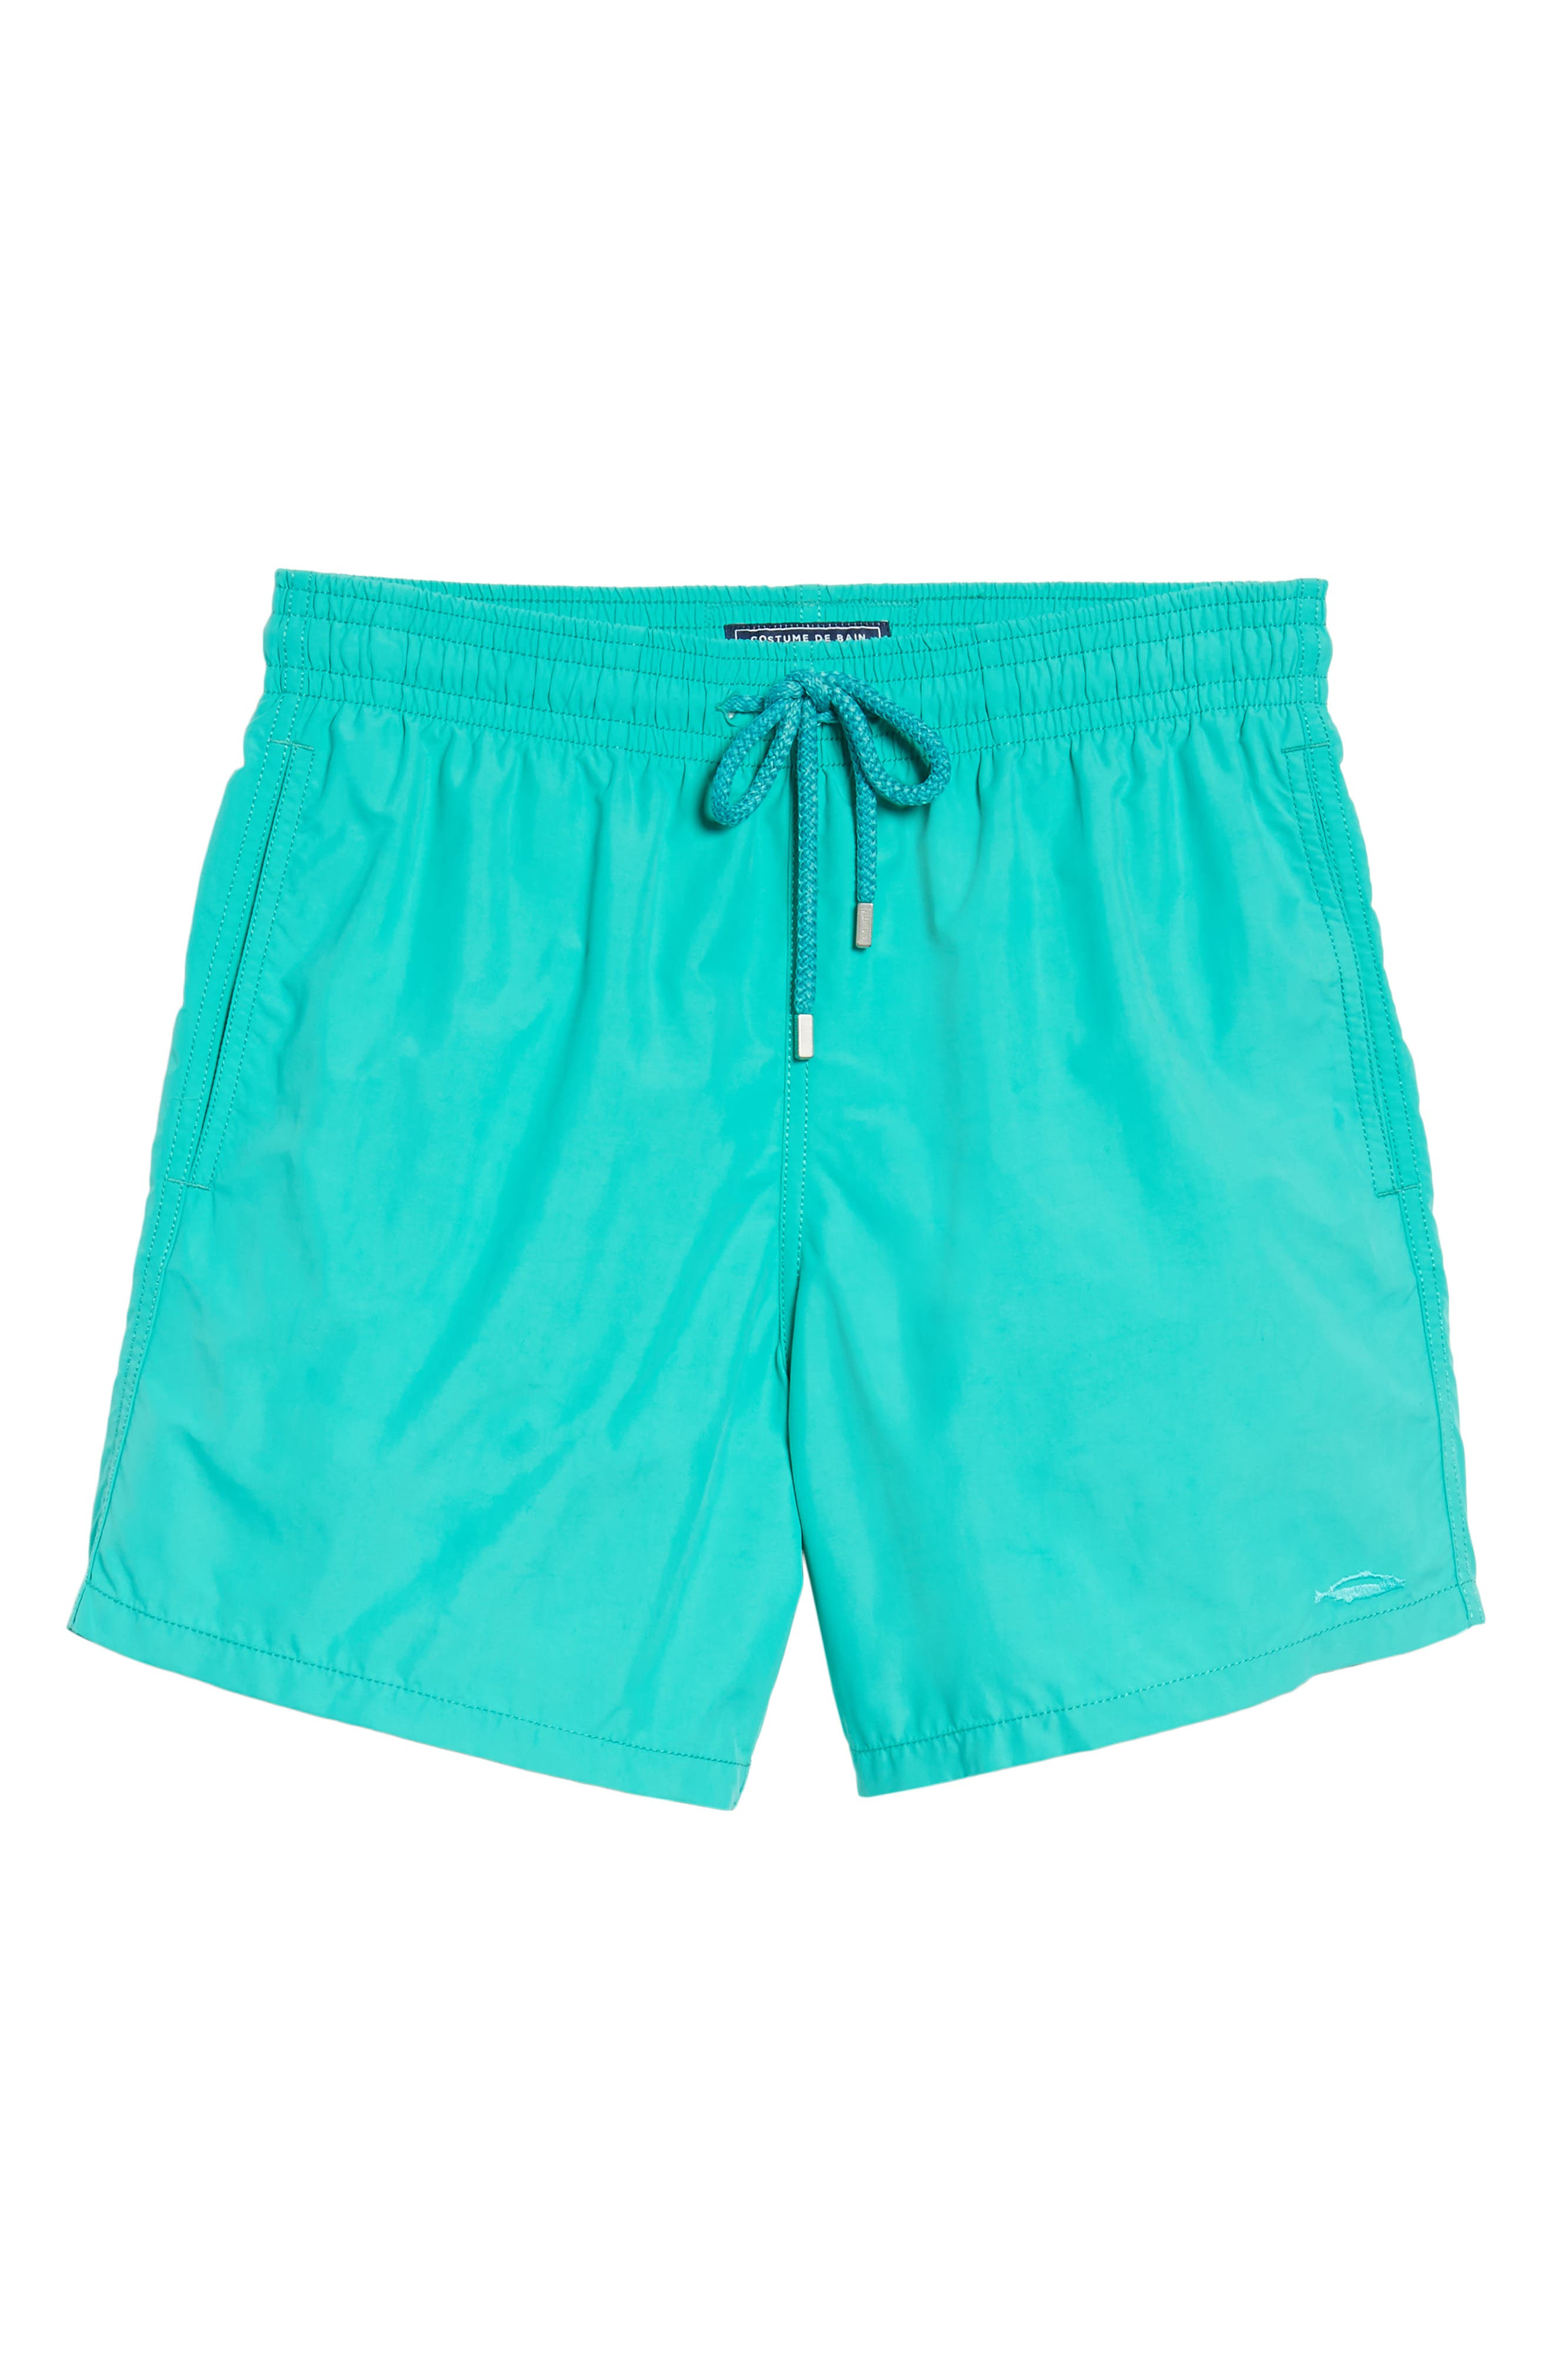 Sardine Water Reactive Swim Trunks,                             Alternate thumbnail 6, color,                             348